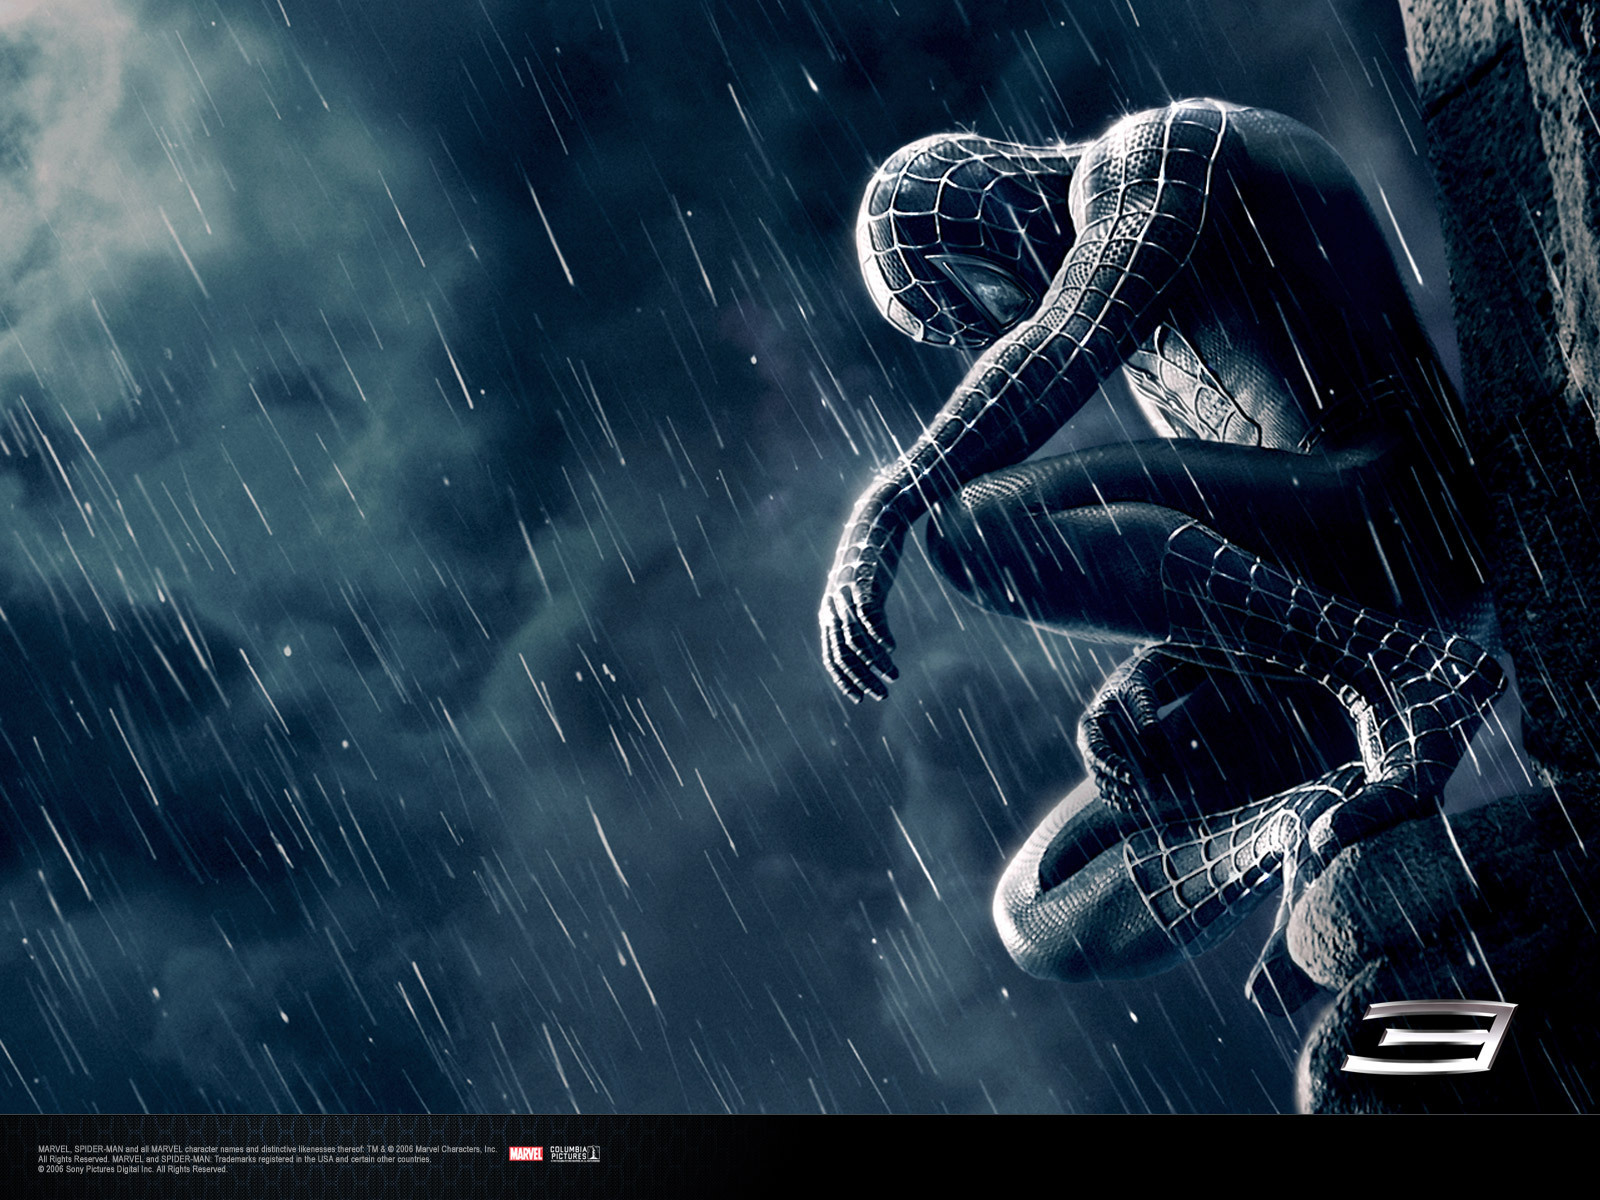 Spiderman - Spider-Man Wallpaper (5848785) - Fanpop